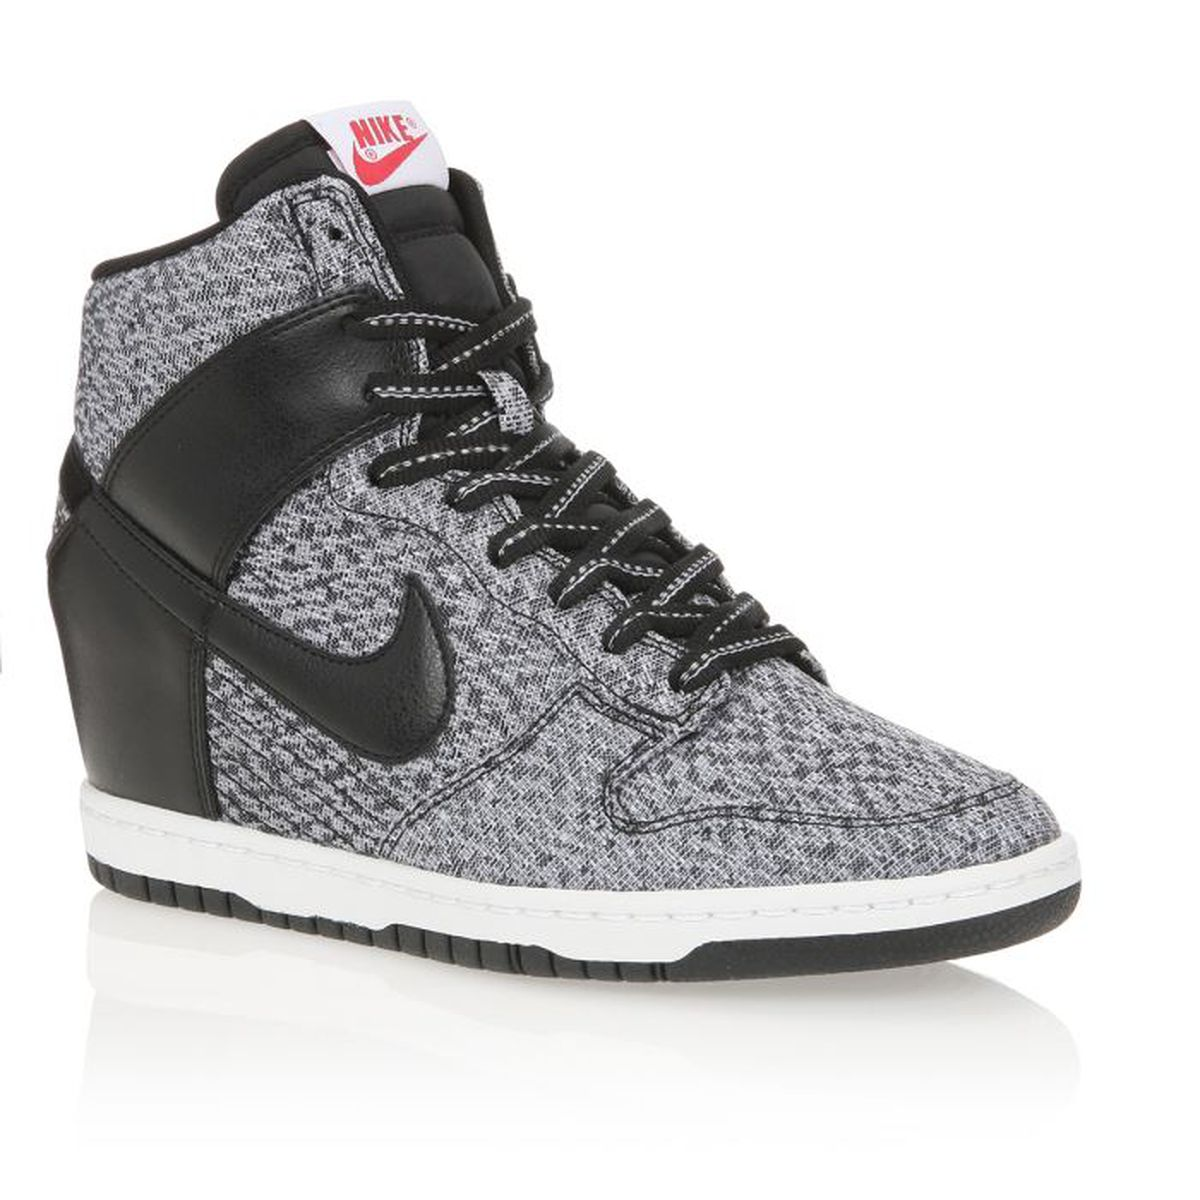 nike dunk high noir femme chaussures running new balance homme. Black Bedroom Furniture Sets. Home Design Ideas